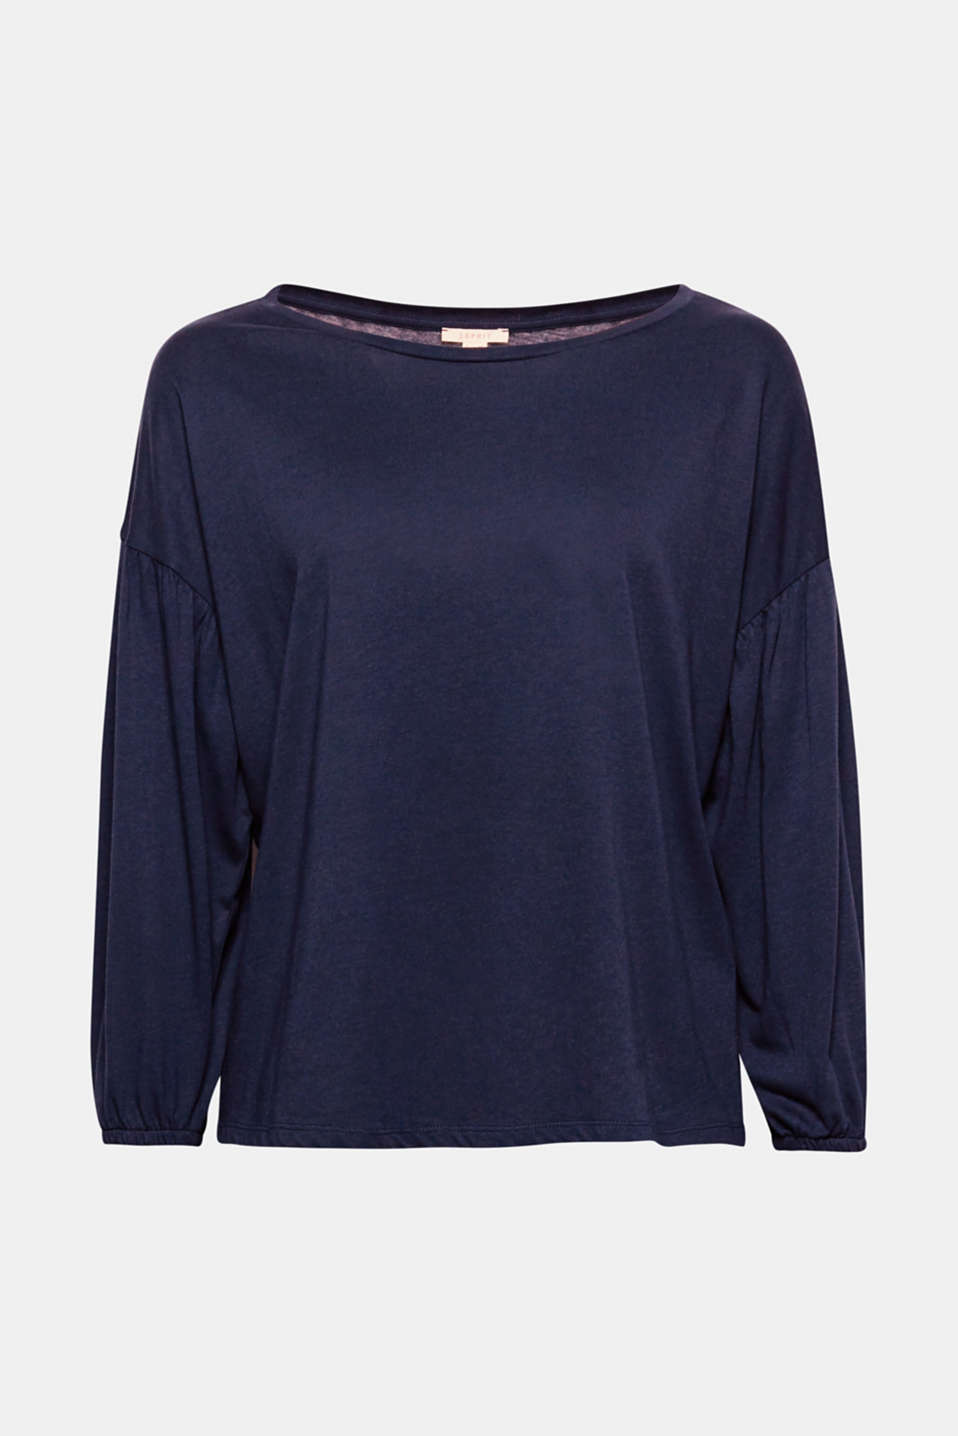 The delicate shimmer of the material and the voluminous balloon sleeves give this long sleeve top its charm!